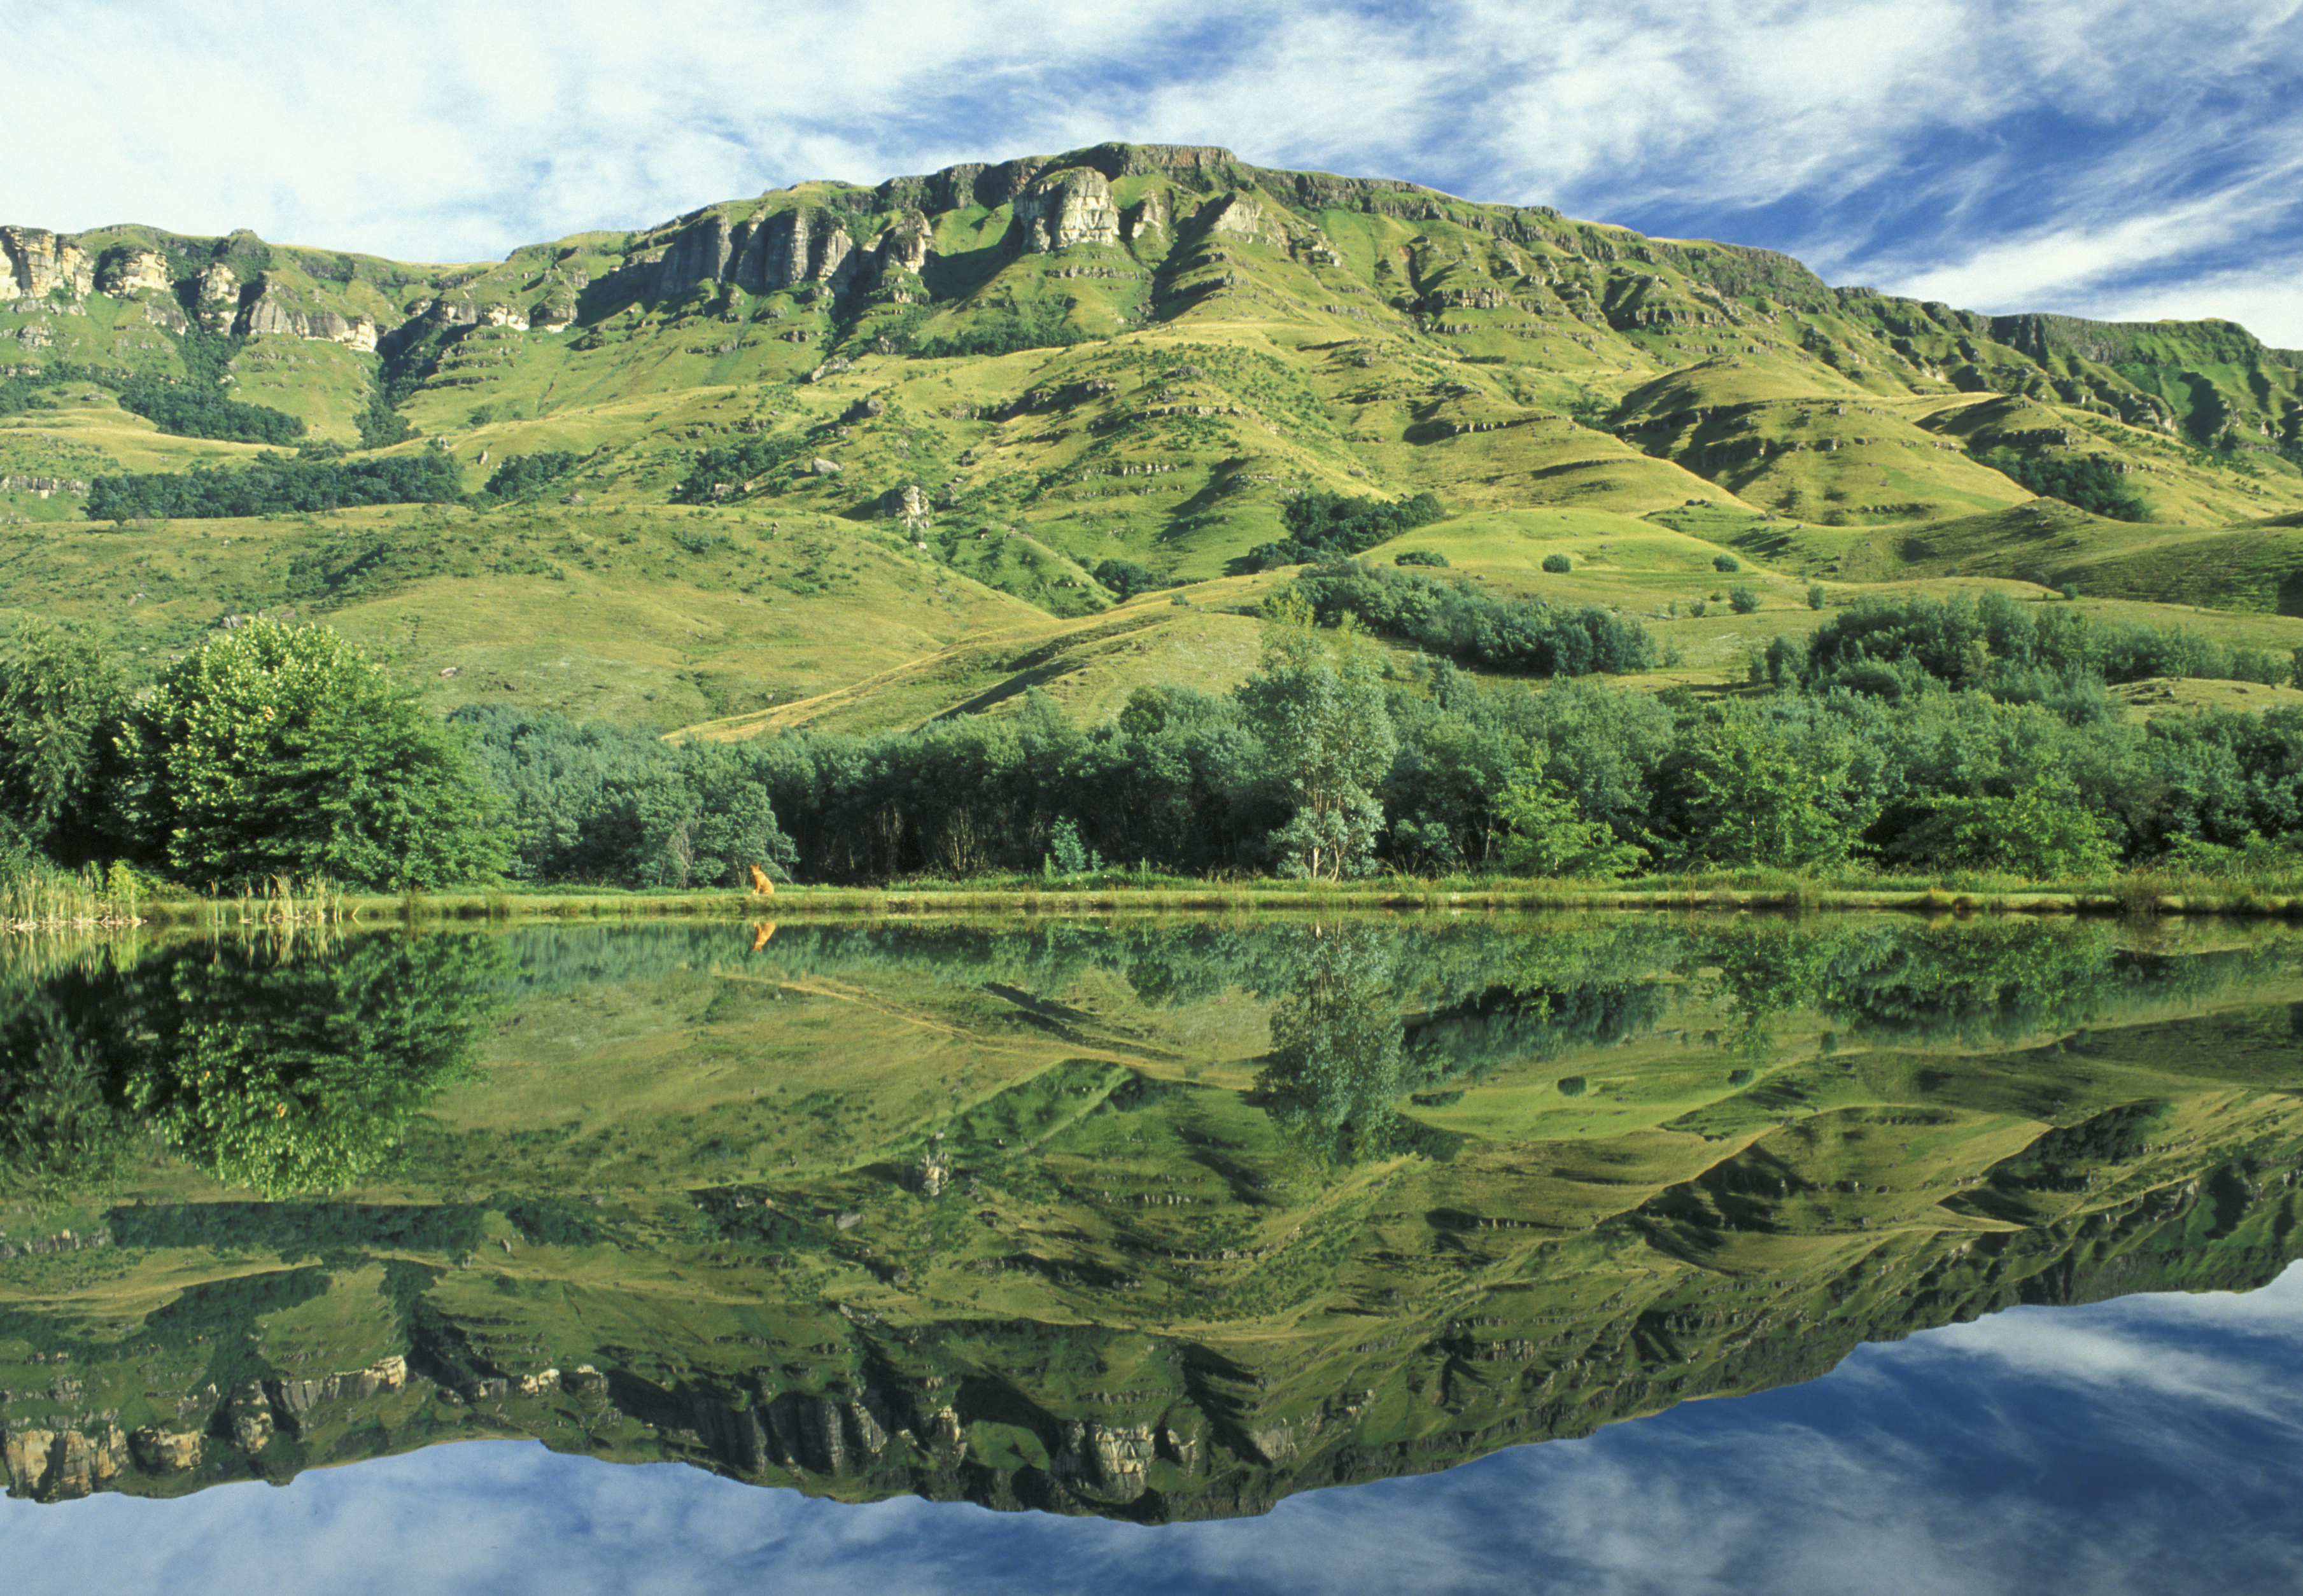 Go hiking in the Drakensburg Mountains in South Africa